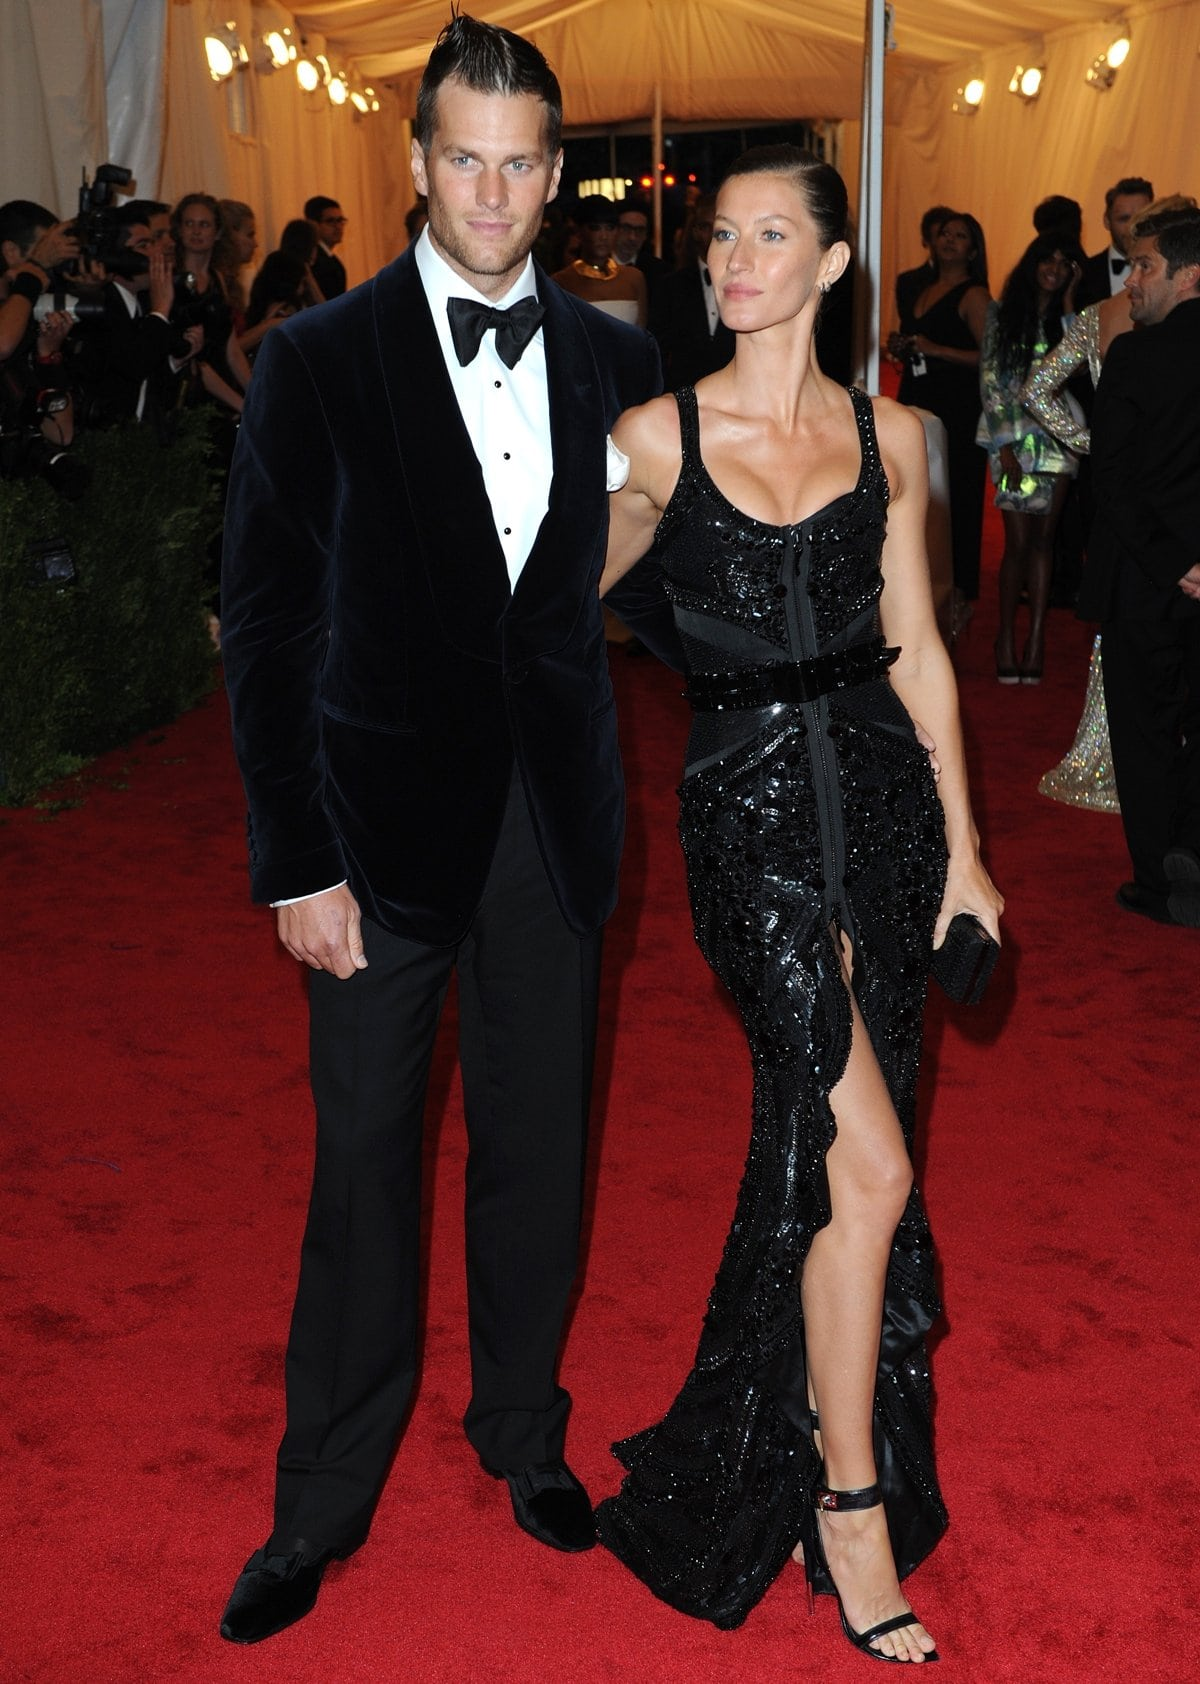 Gisele Bündchen in a dramatic sleeveless sexy black Givenchy dress and Tom Brady in a Tom Ford suit at the 2012 Met Gala